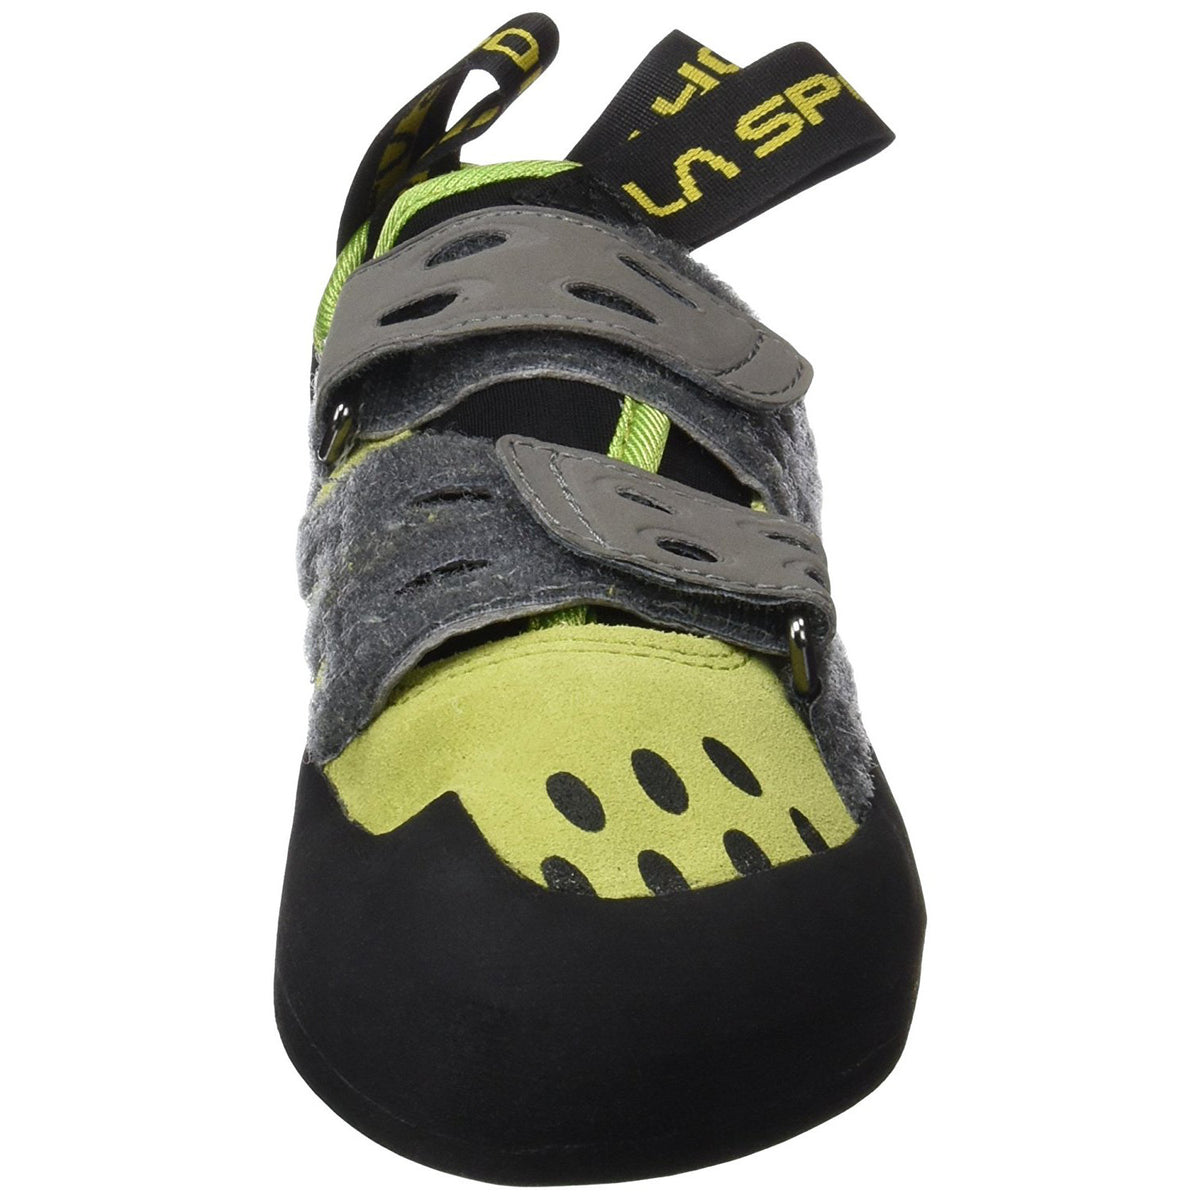 La Sportiva Tarantula climbign shoe, view from the front